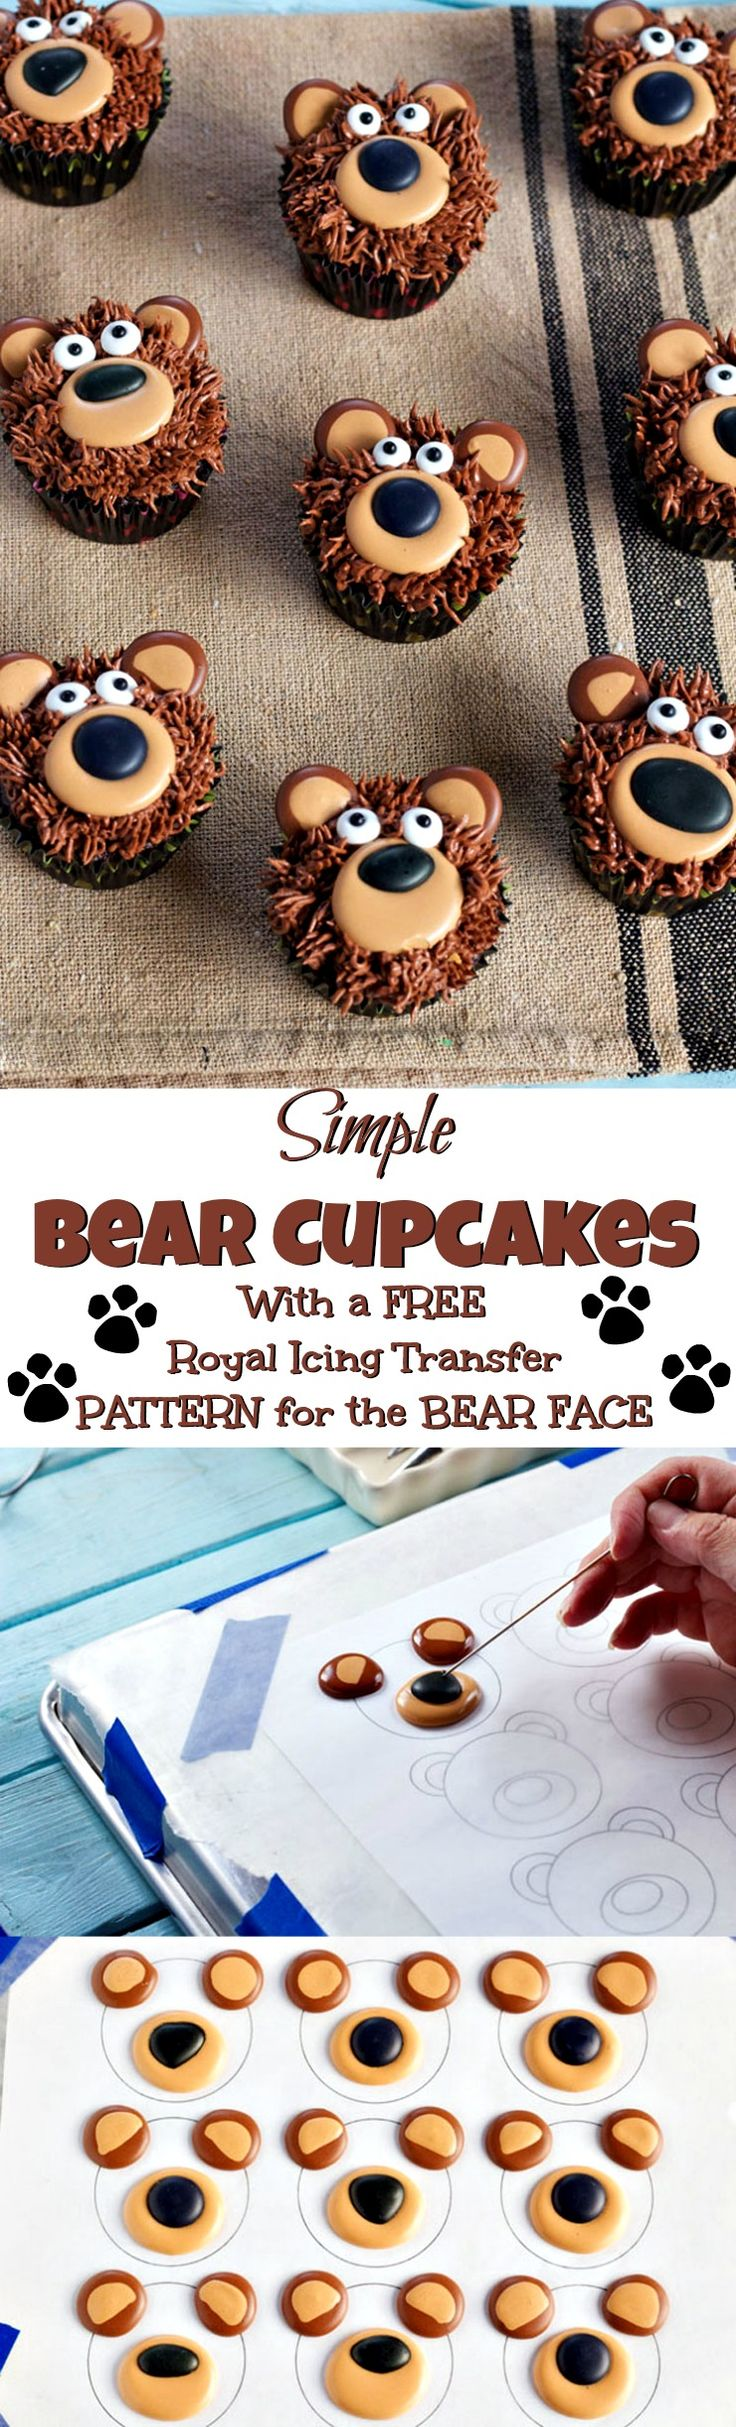 Bear Cupcakes - with Royal Icing Transfers